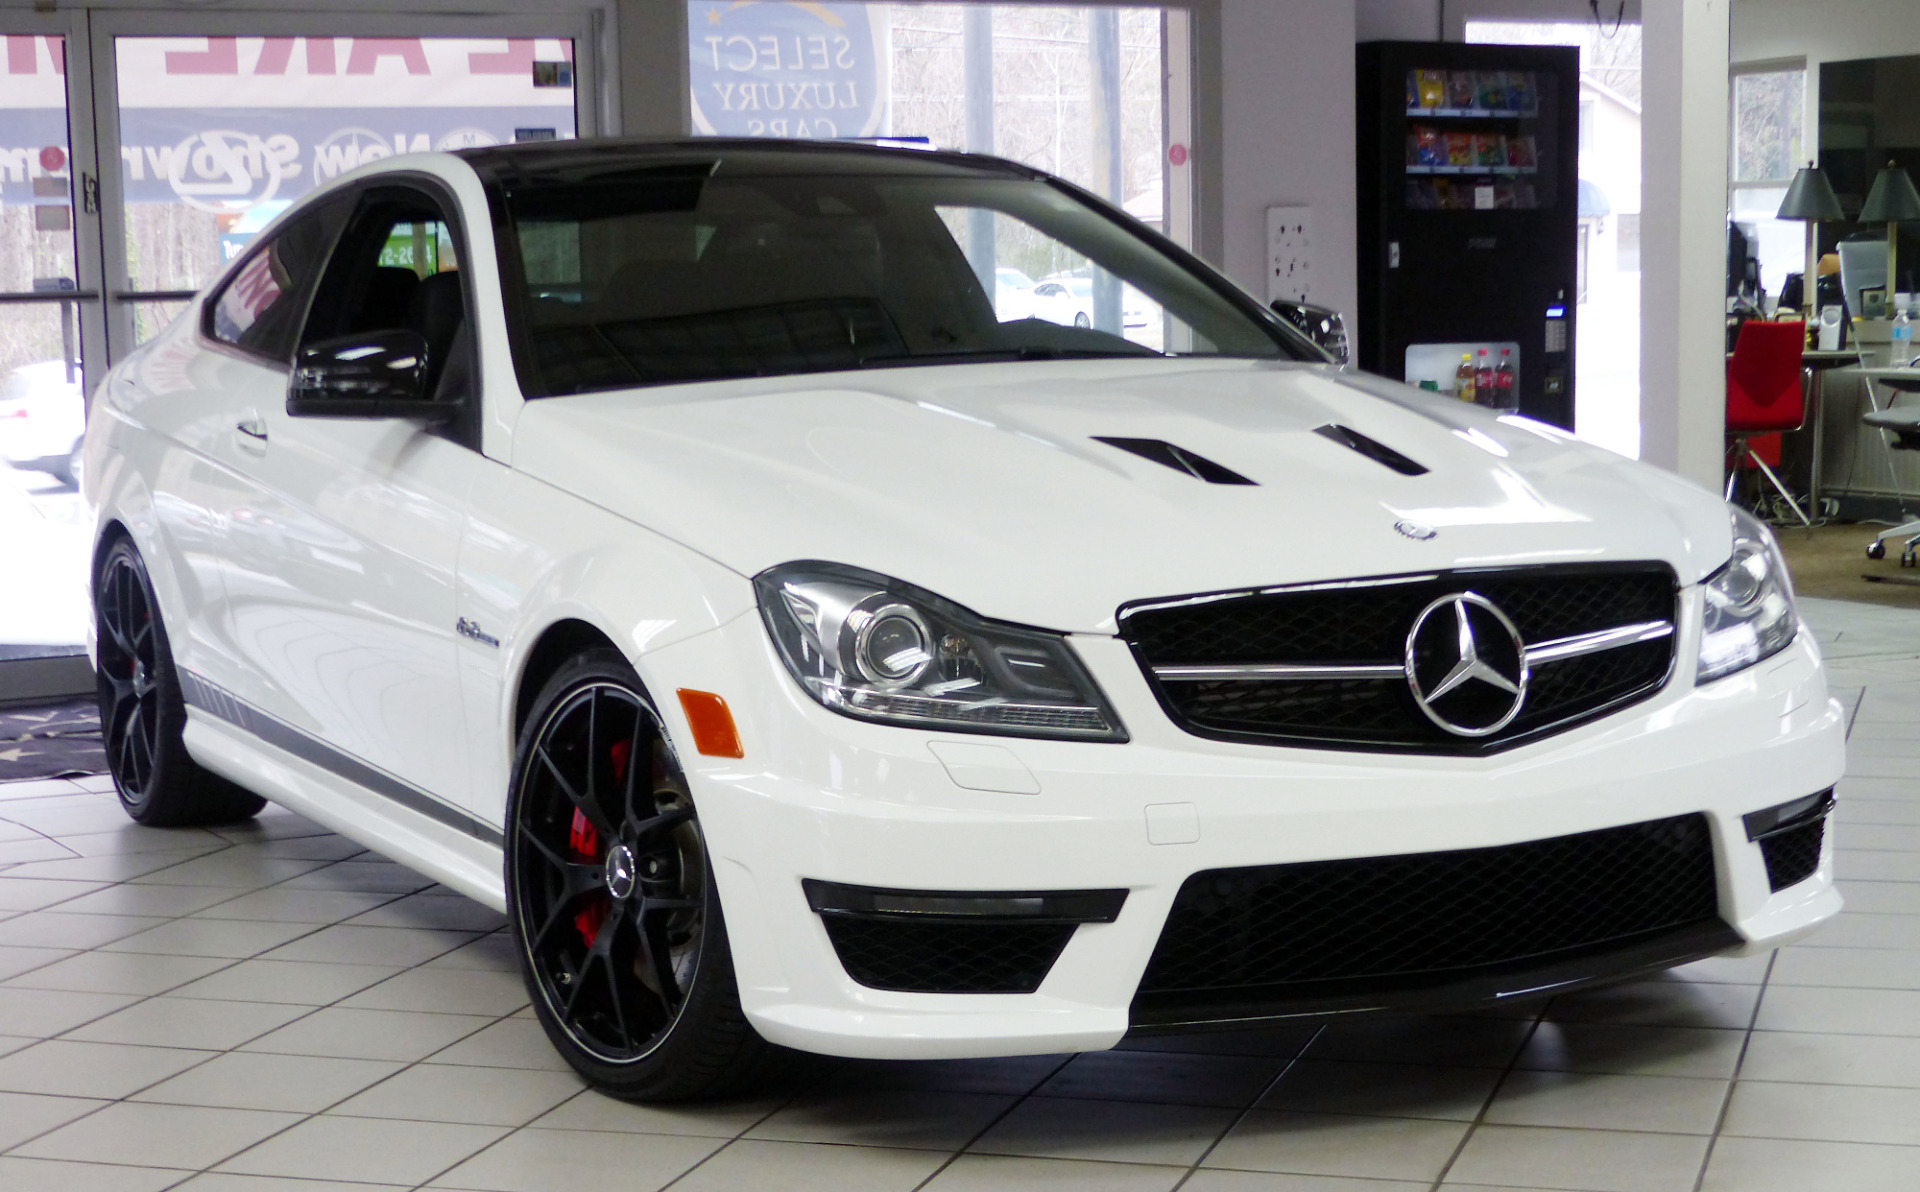 Used 2014 mercedes benz c class c63 amg marietta ga for Mercedes benz c63 2014